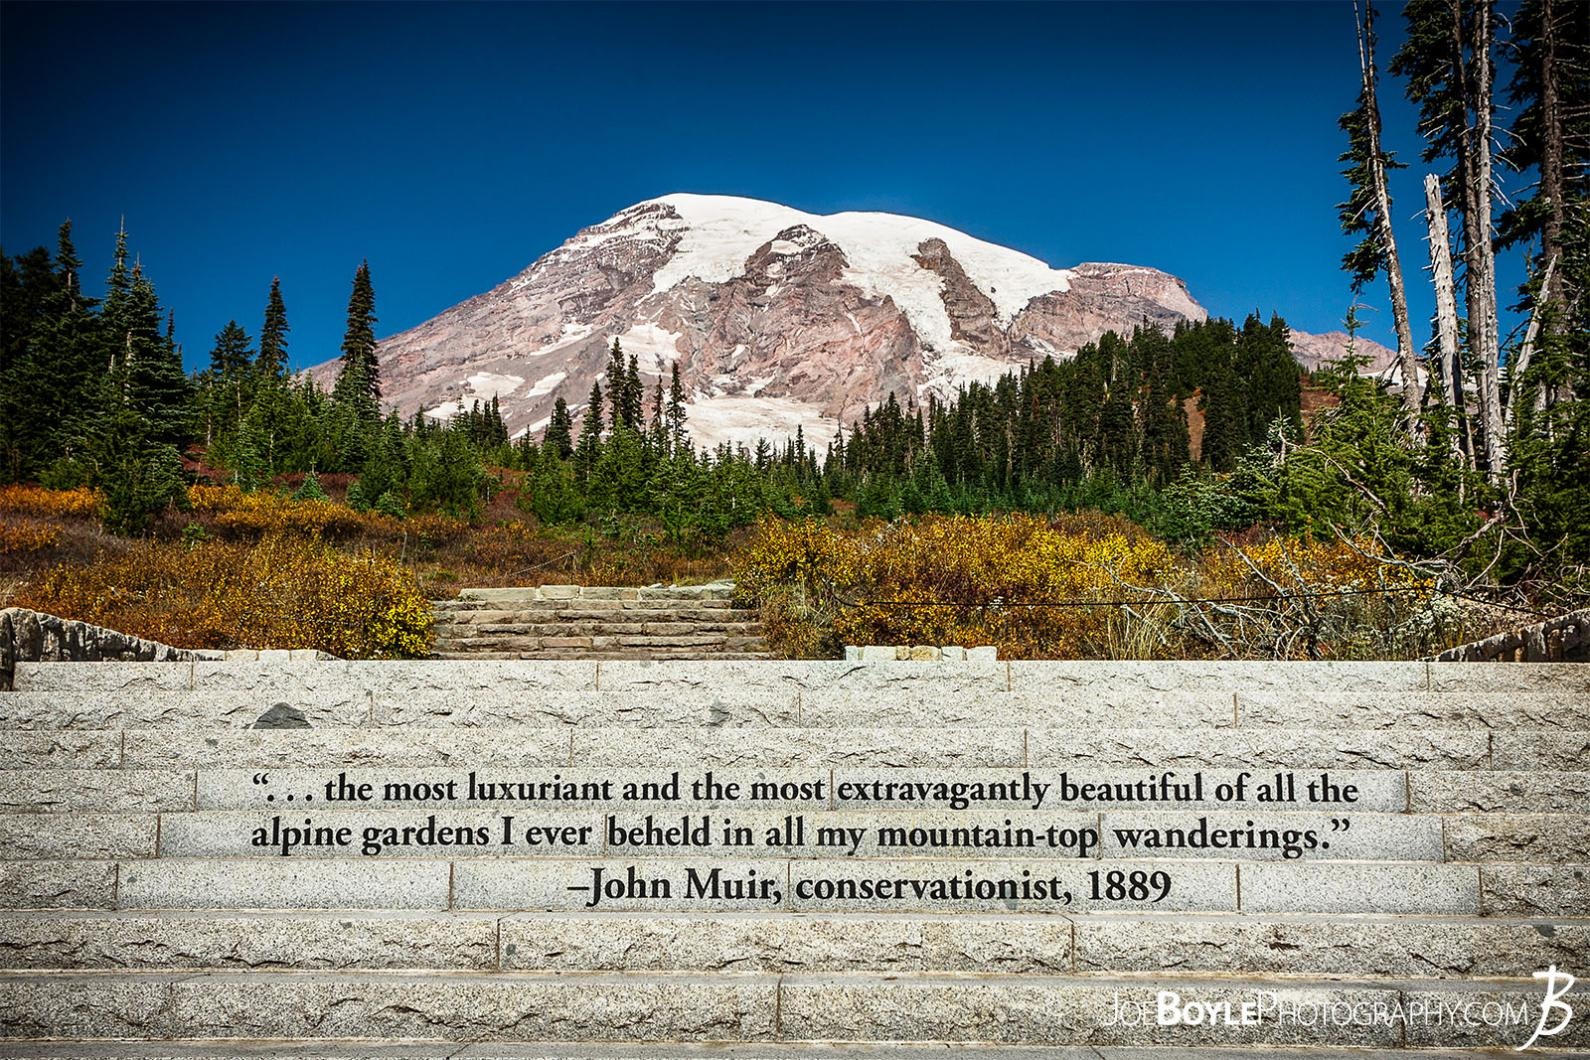 mount-rainier-with-john-muir-quote-on-steps